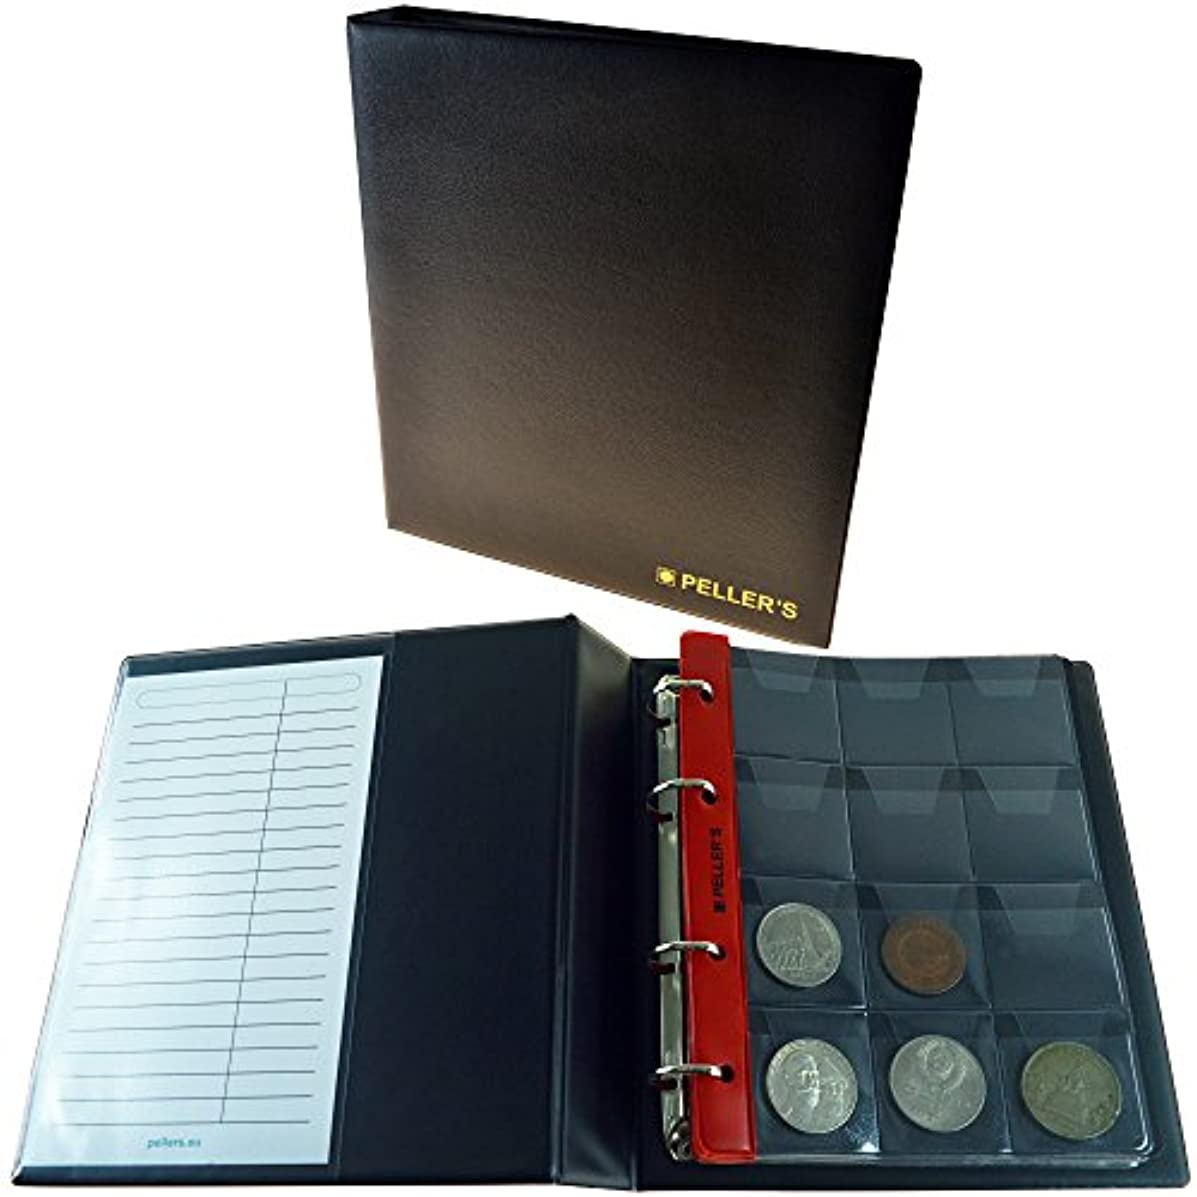 PELLER'S Coin Album for 120 Big Coins with a Diameter up to 1.57